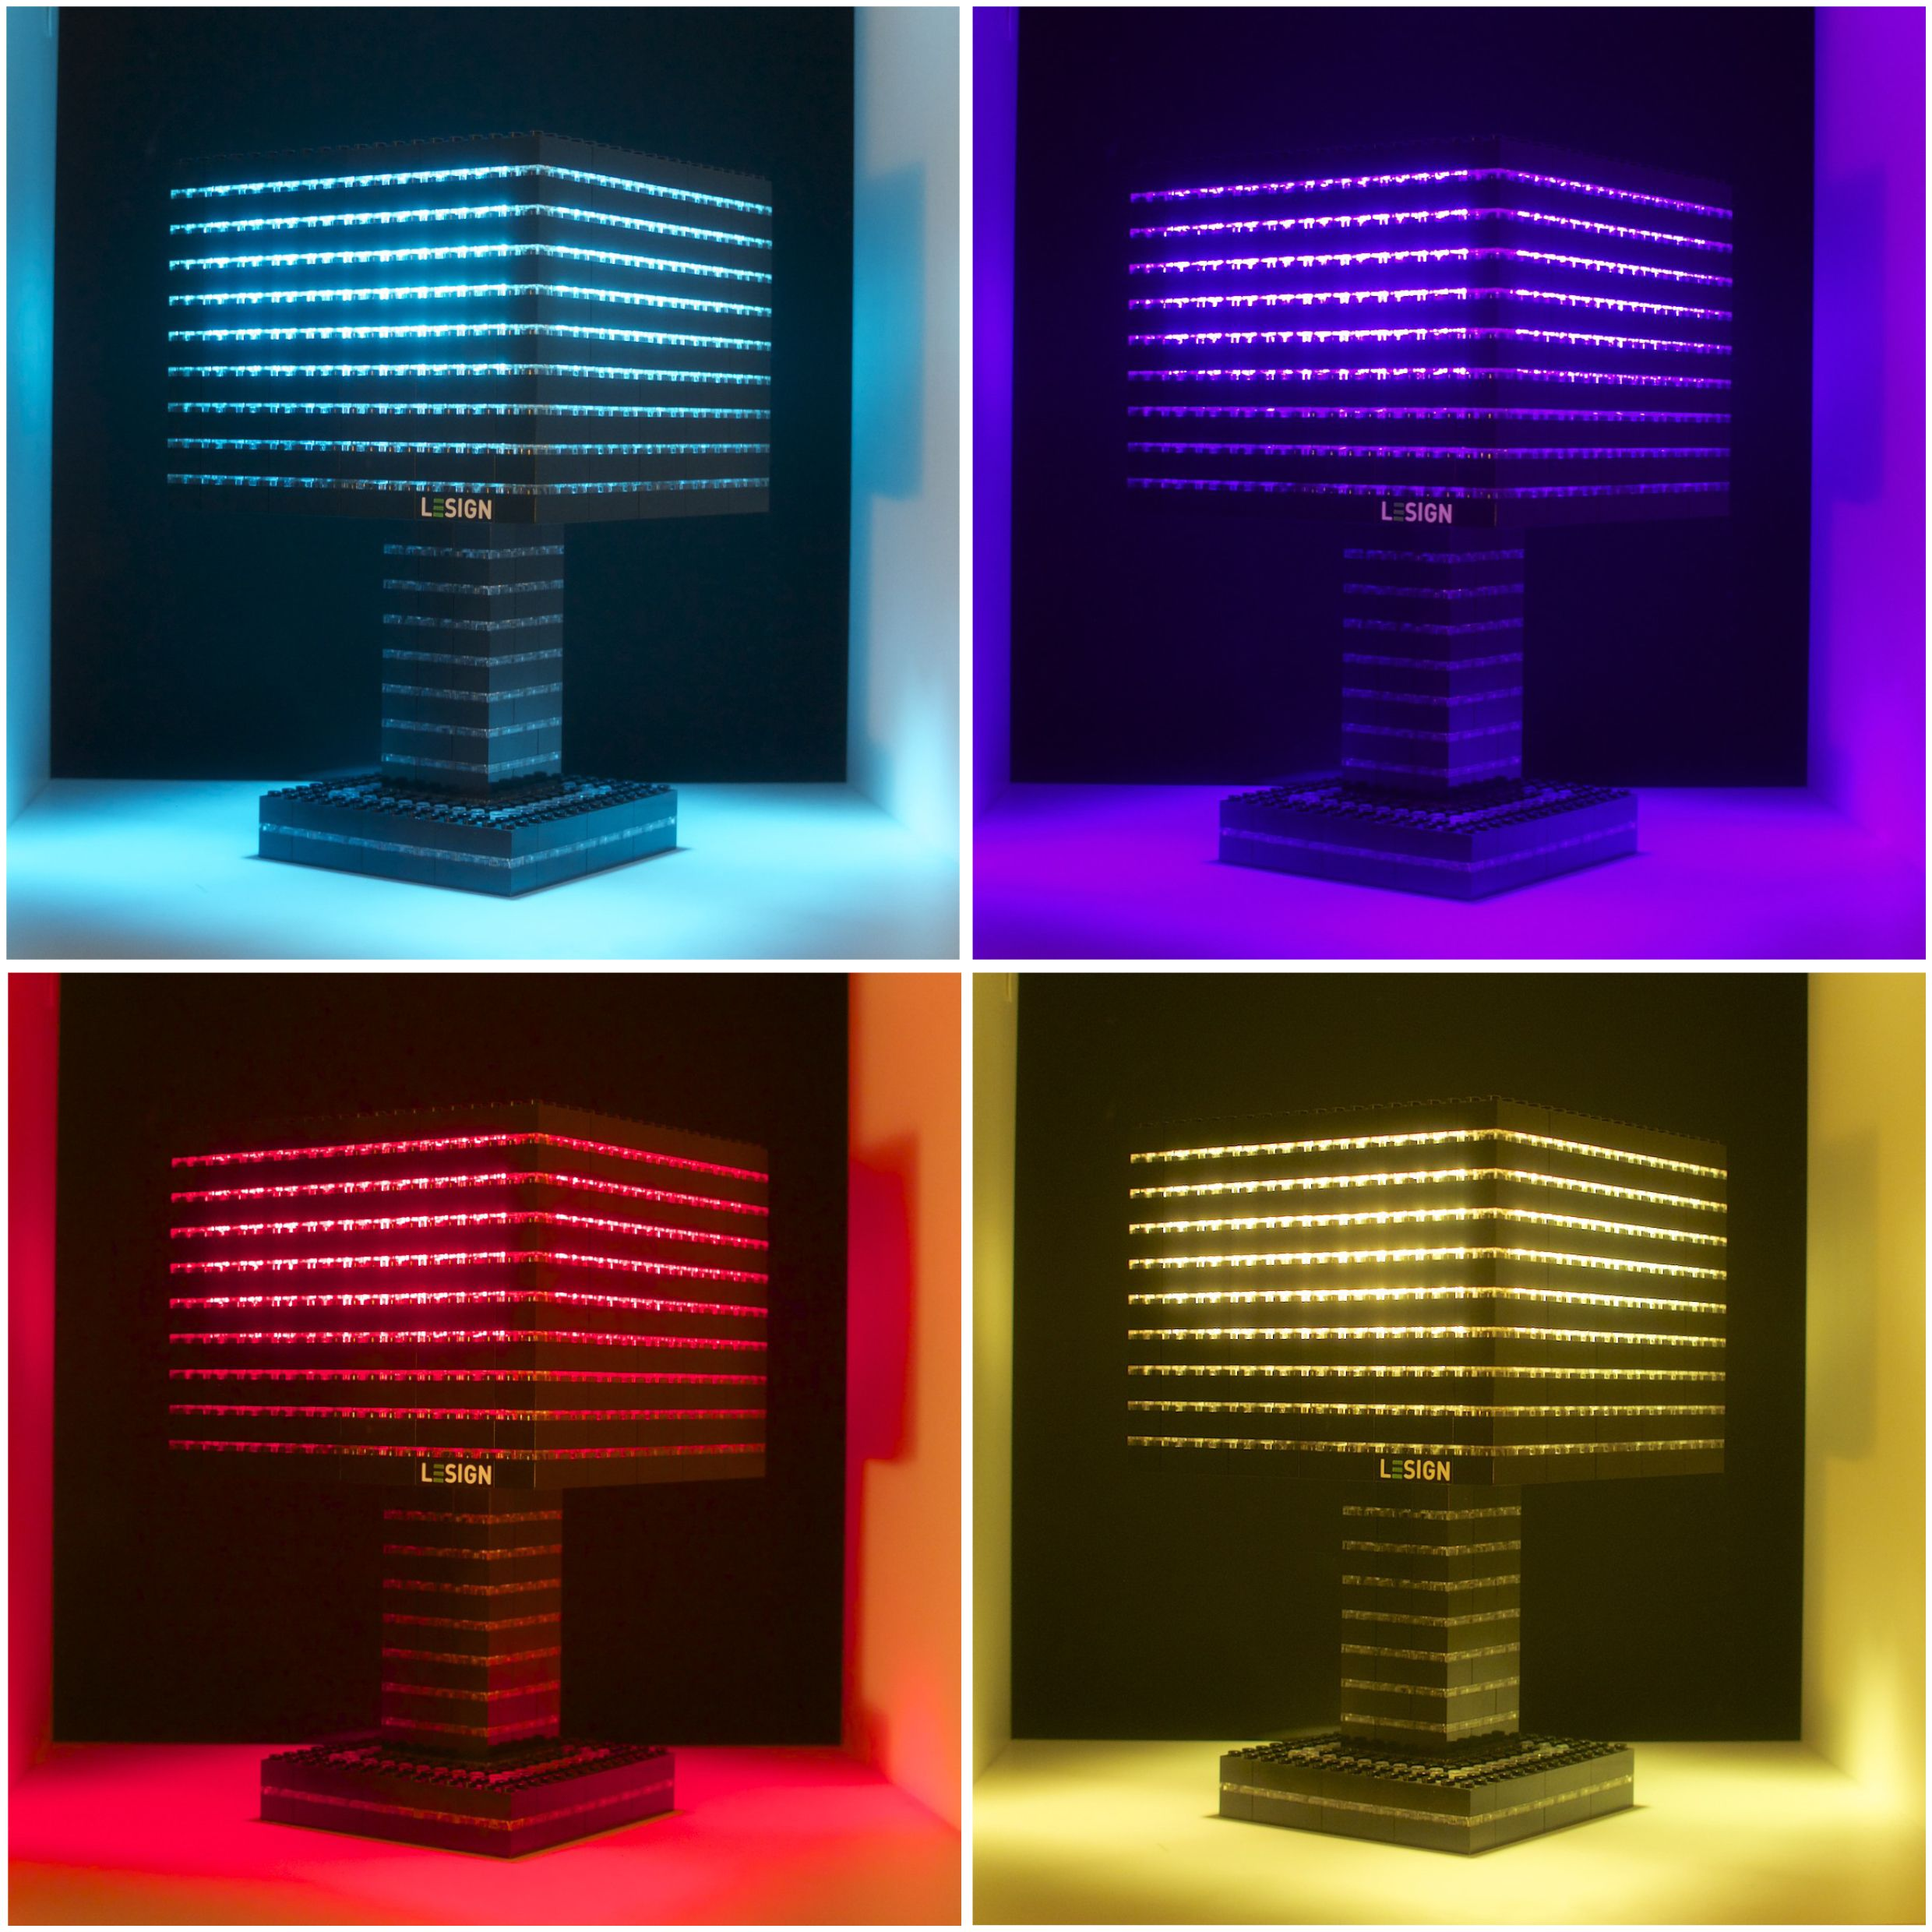 Beautiful Farbenfrohe Lego Lampe mit spezieller LED Gl hbirne die auf Knopfdruck die Farbe wechseln kann Colorful Lego lamp with color changing light bulb